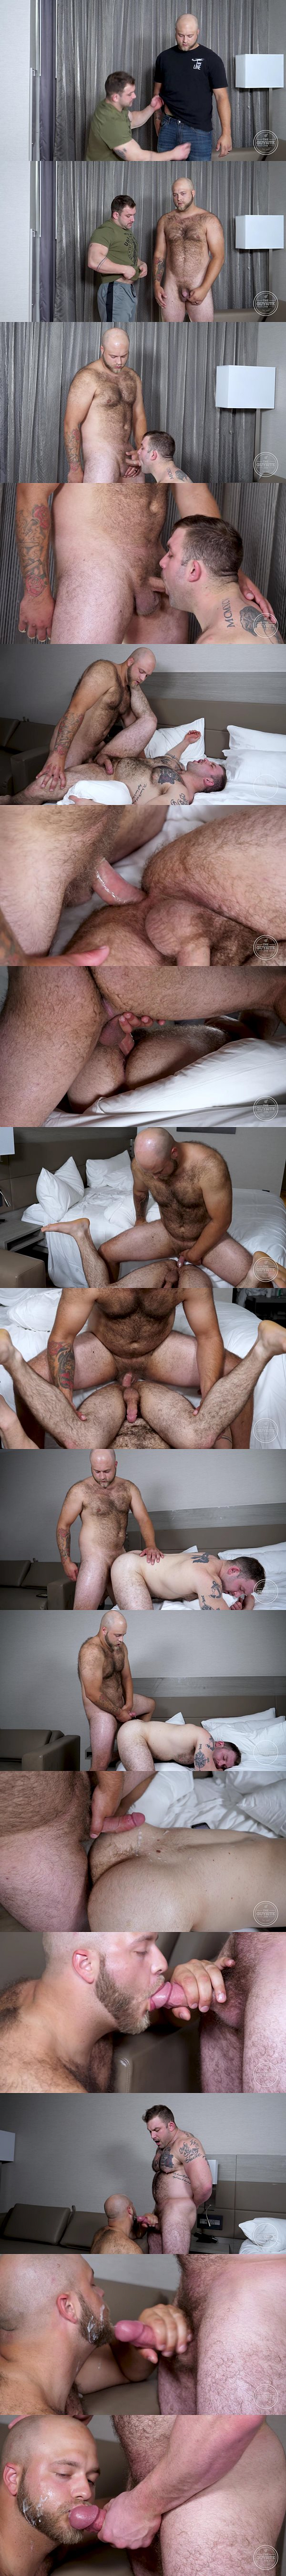 Bald fuzzy straight muscle bear Jacob fucks sexy beefcake Jack's muscle ass before Jack nuts on Jacob's ass at Theguysite